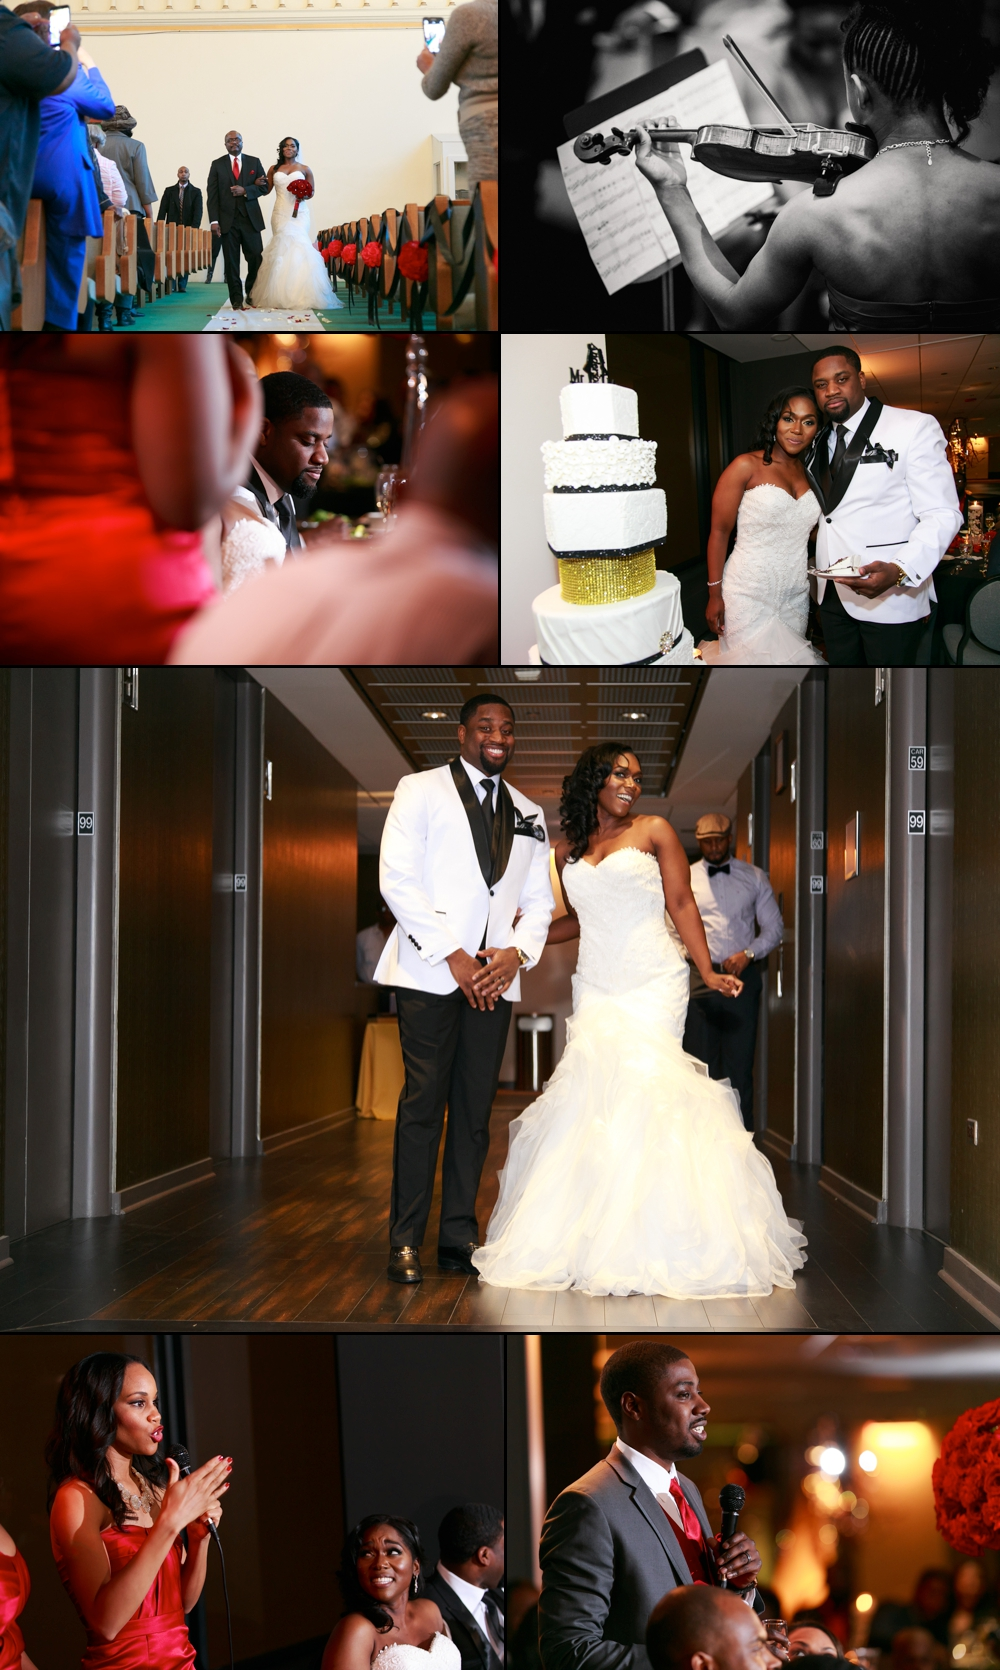 photography-wedding-boda-chicago-makeup-chicagoweddingphotographer-boda-bride-groom-flowers-bouquet-novia.jpg